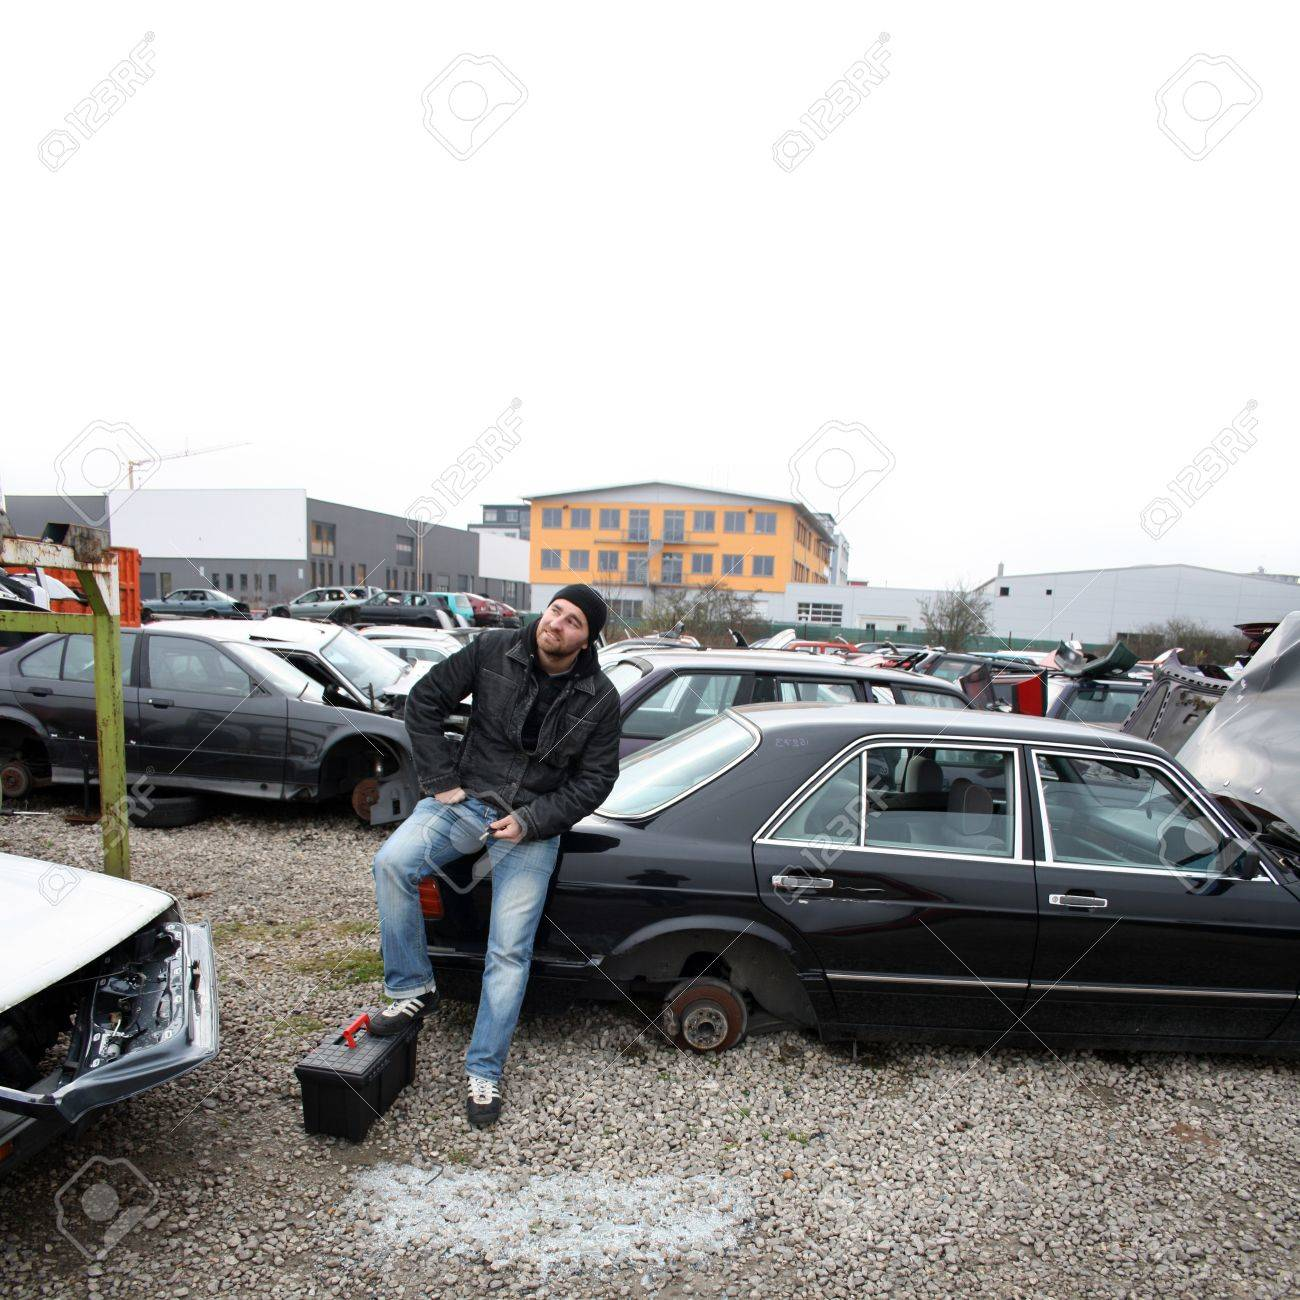 Scrap Yard For Car Recycling Stock Photo, Picture And Royalty Free ...